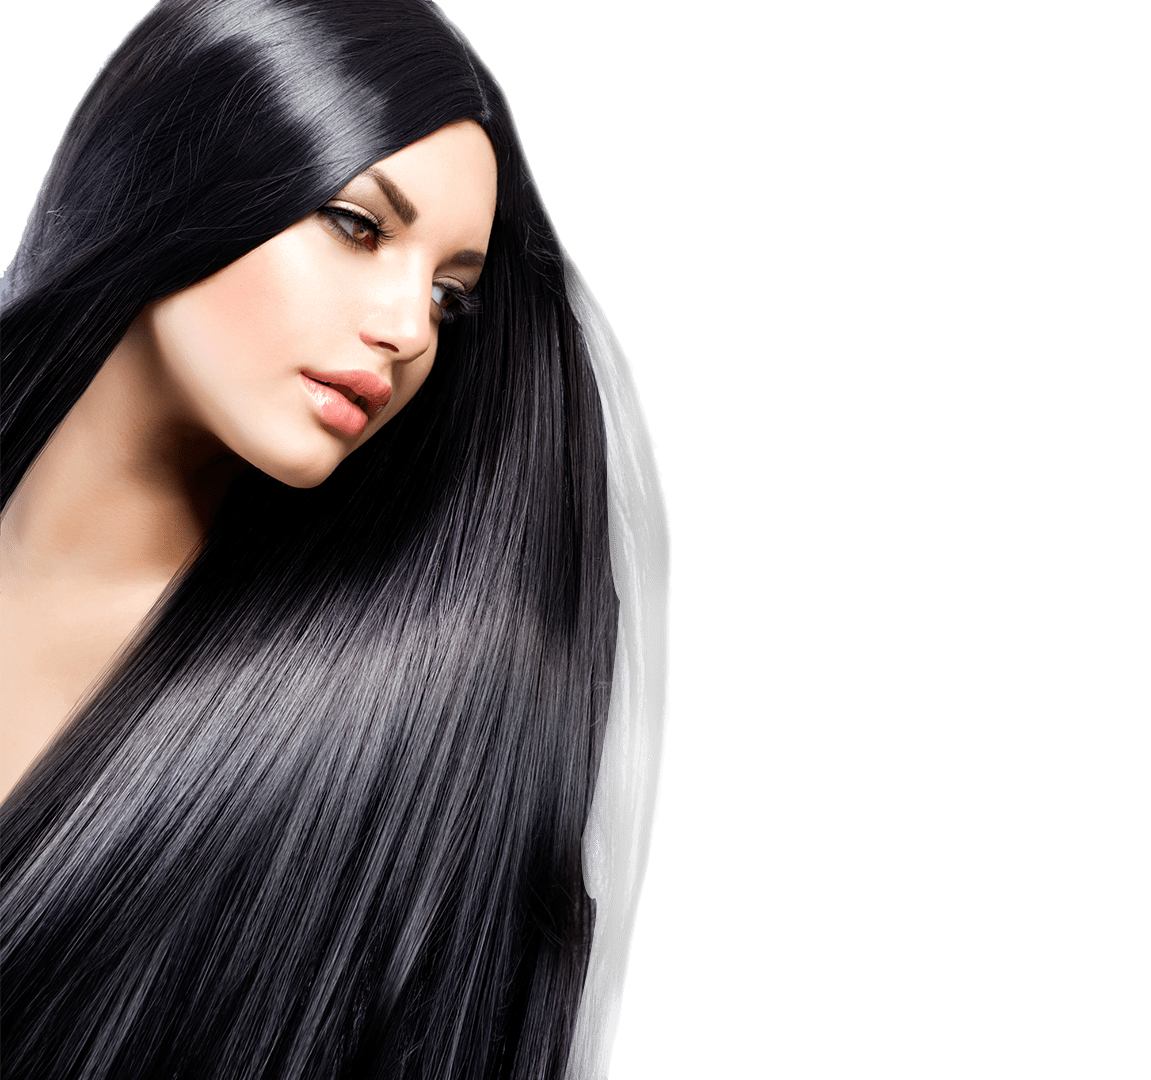 Salon Hair J Faith Hair Studio Top Hair Salon Logan Township Nj